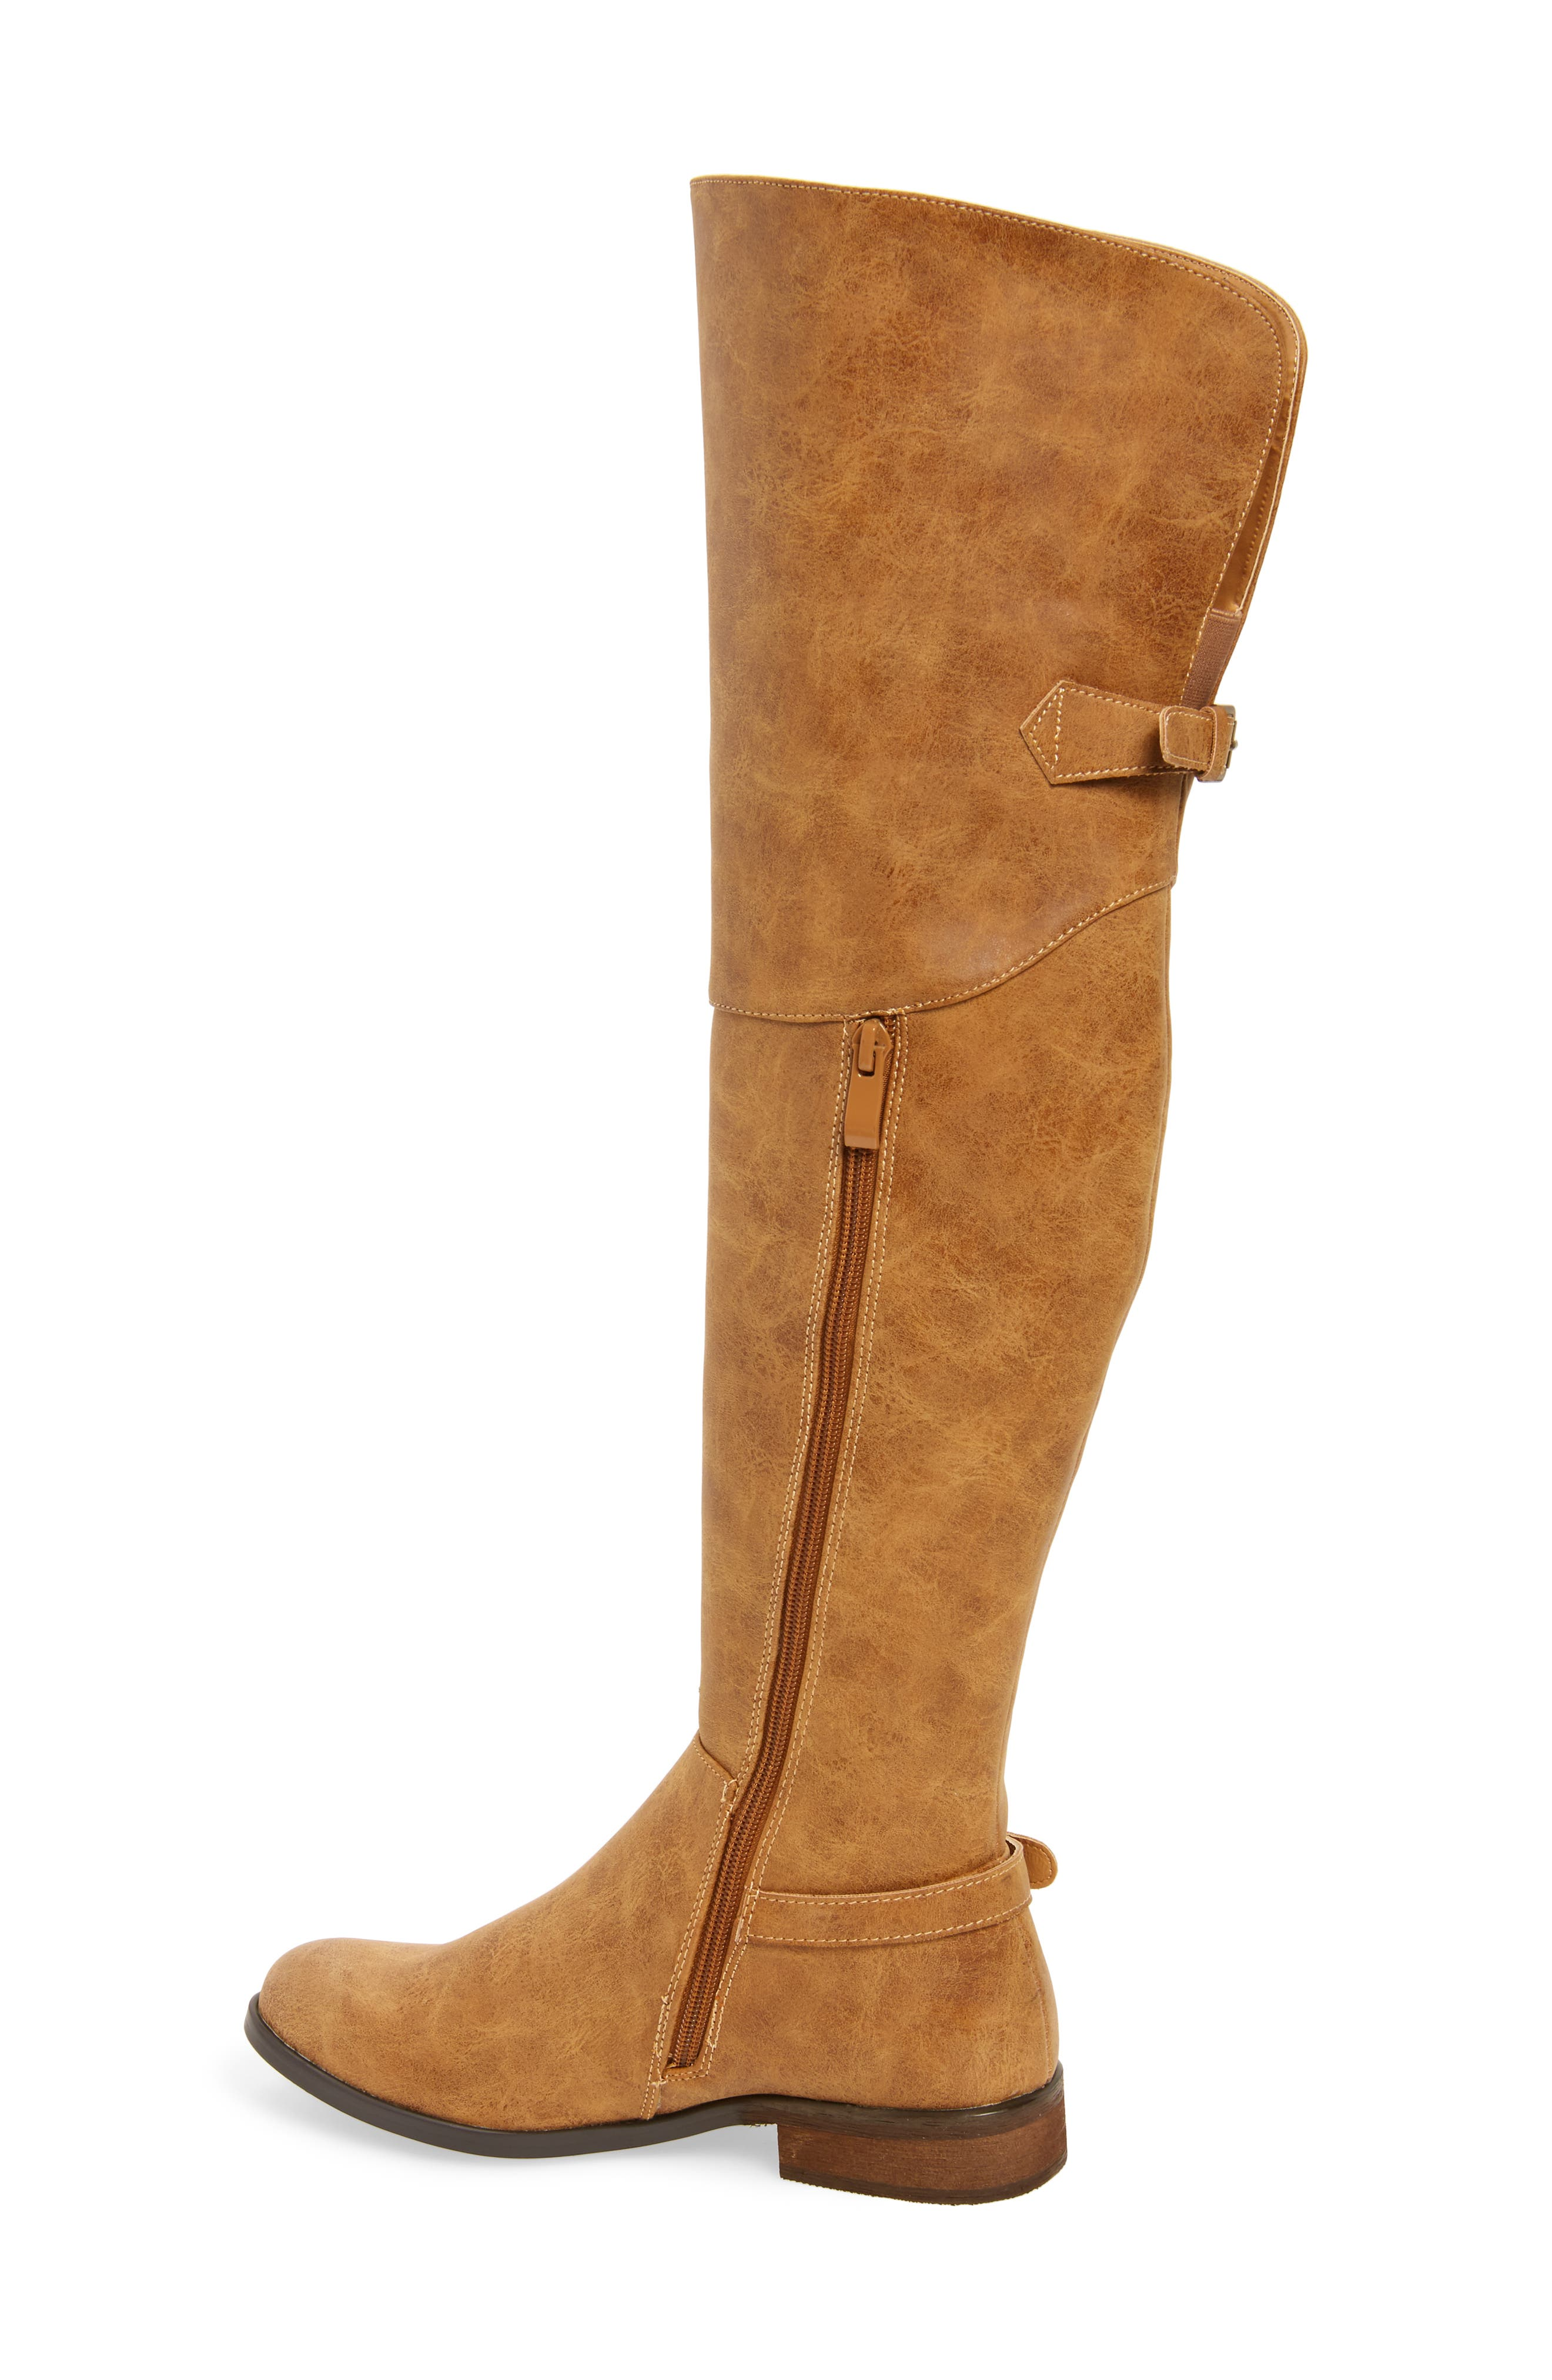 Otto Over the Knee Boot,                             Alternate thumbnail 2, color,                             Tan Faux Leather